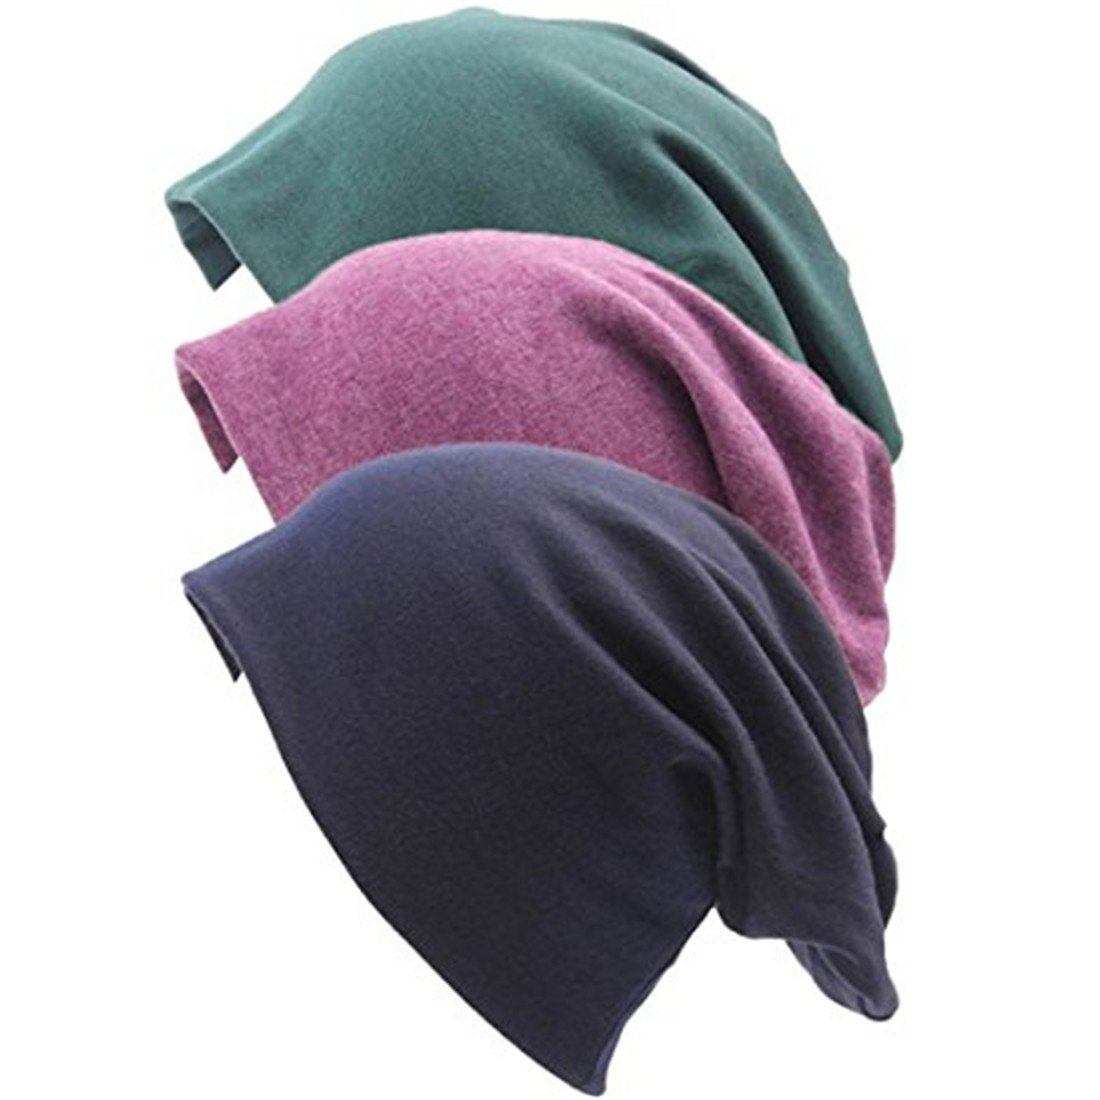 Lydreewam Fashion 3 Pack Unisex Soft Comfy Cotton Beanie Sleep and Chemo Cap Hats for Hairloss, Cancer